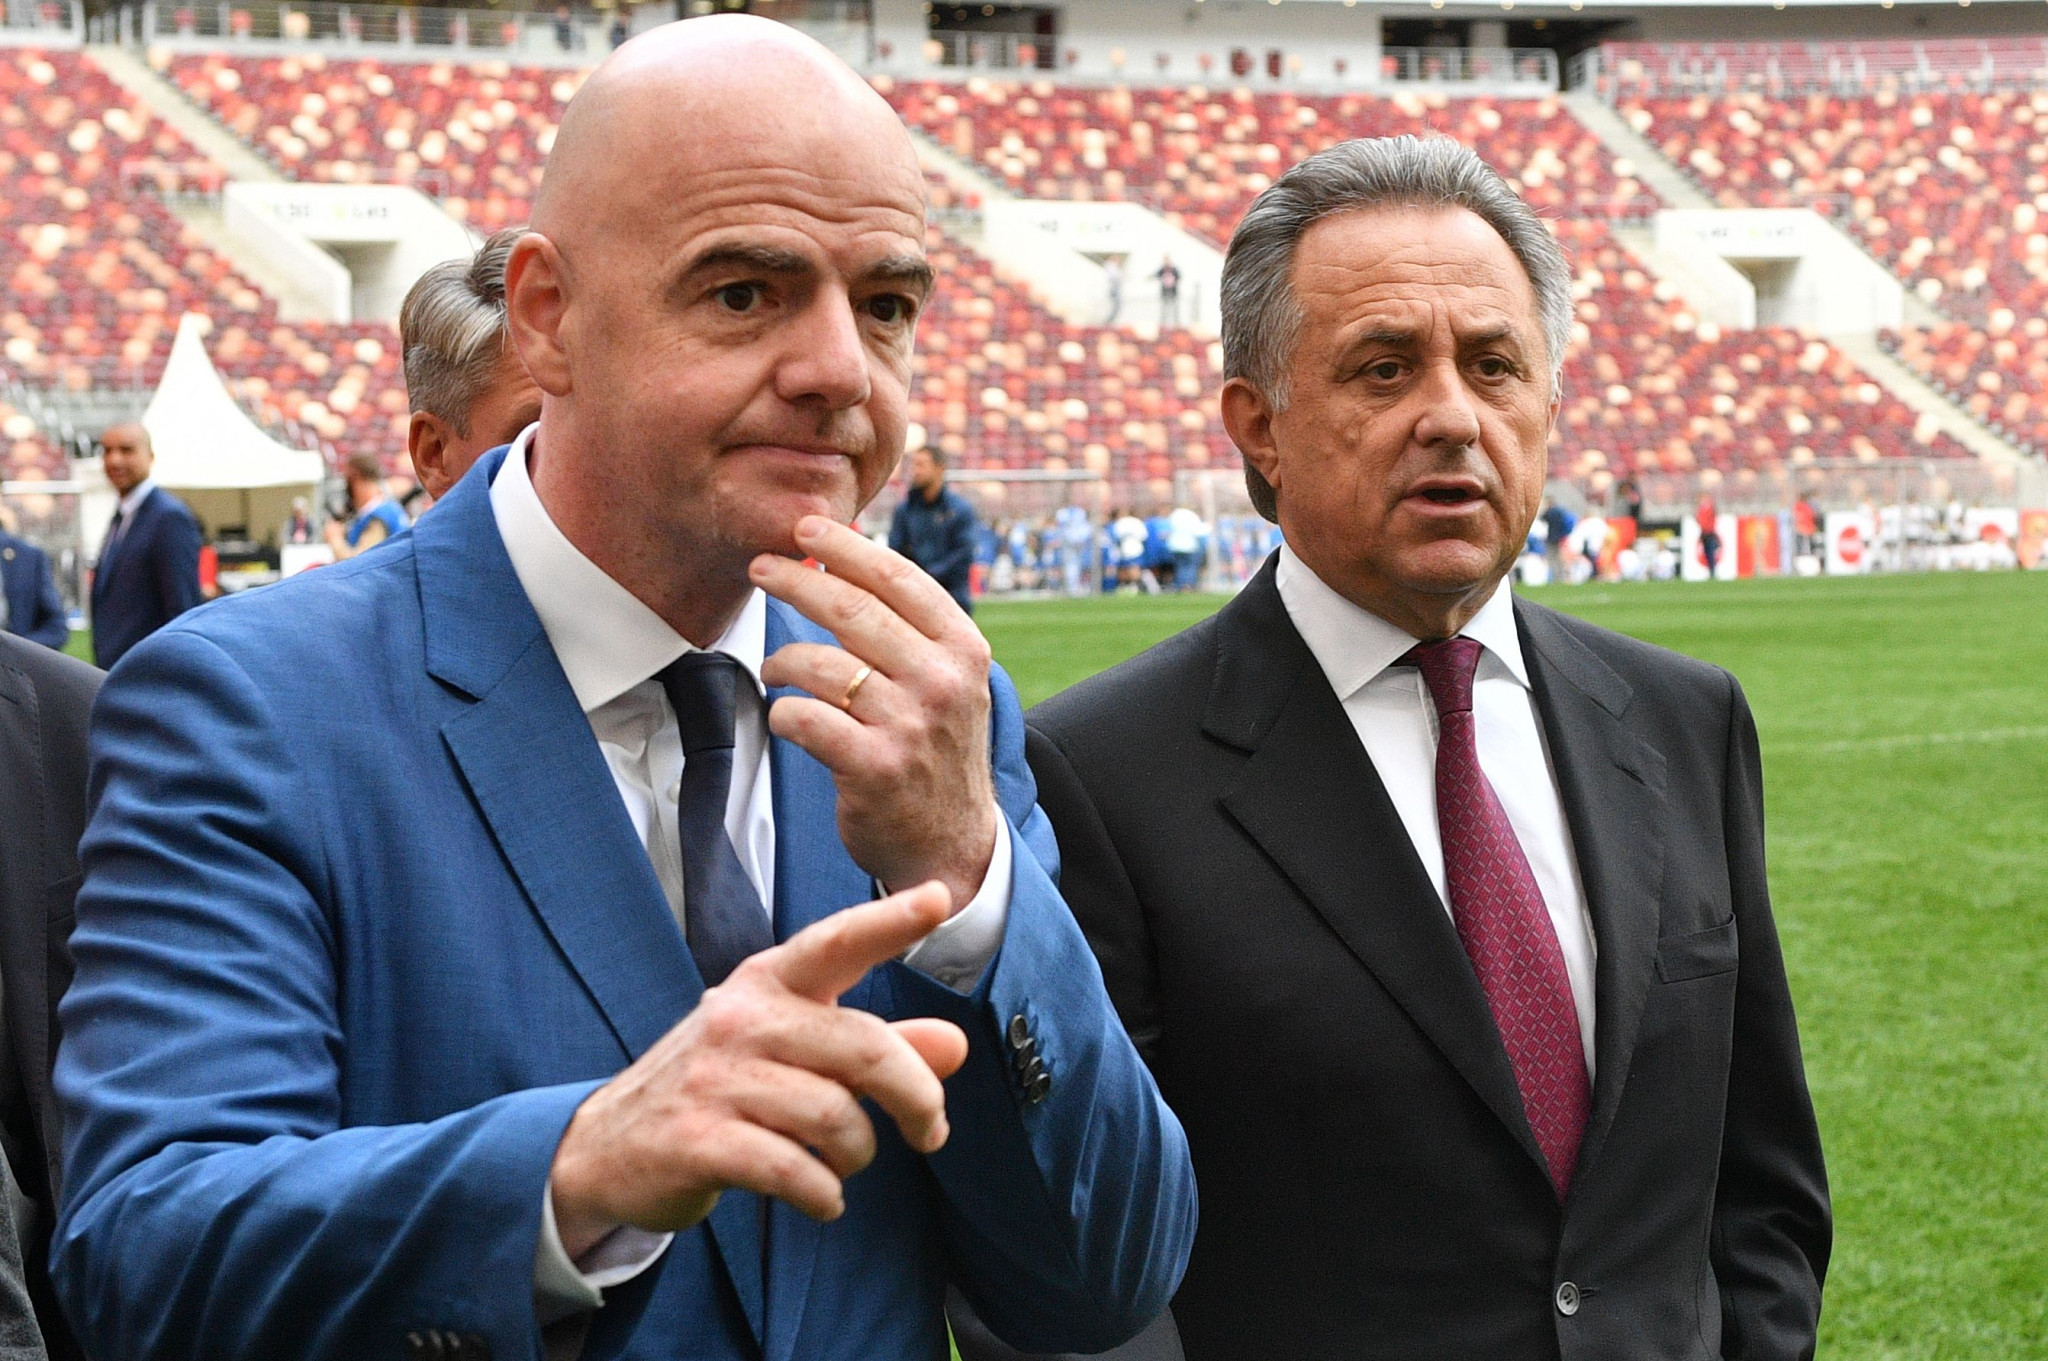 Vitaly Mutko has taken part in a meeting to back Gianni Infantino's bid to be re-elected as President of FIFA in what appears to confirm his return to the position of the head of the Russian Football Union ©Getty Images